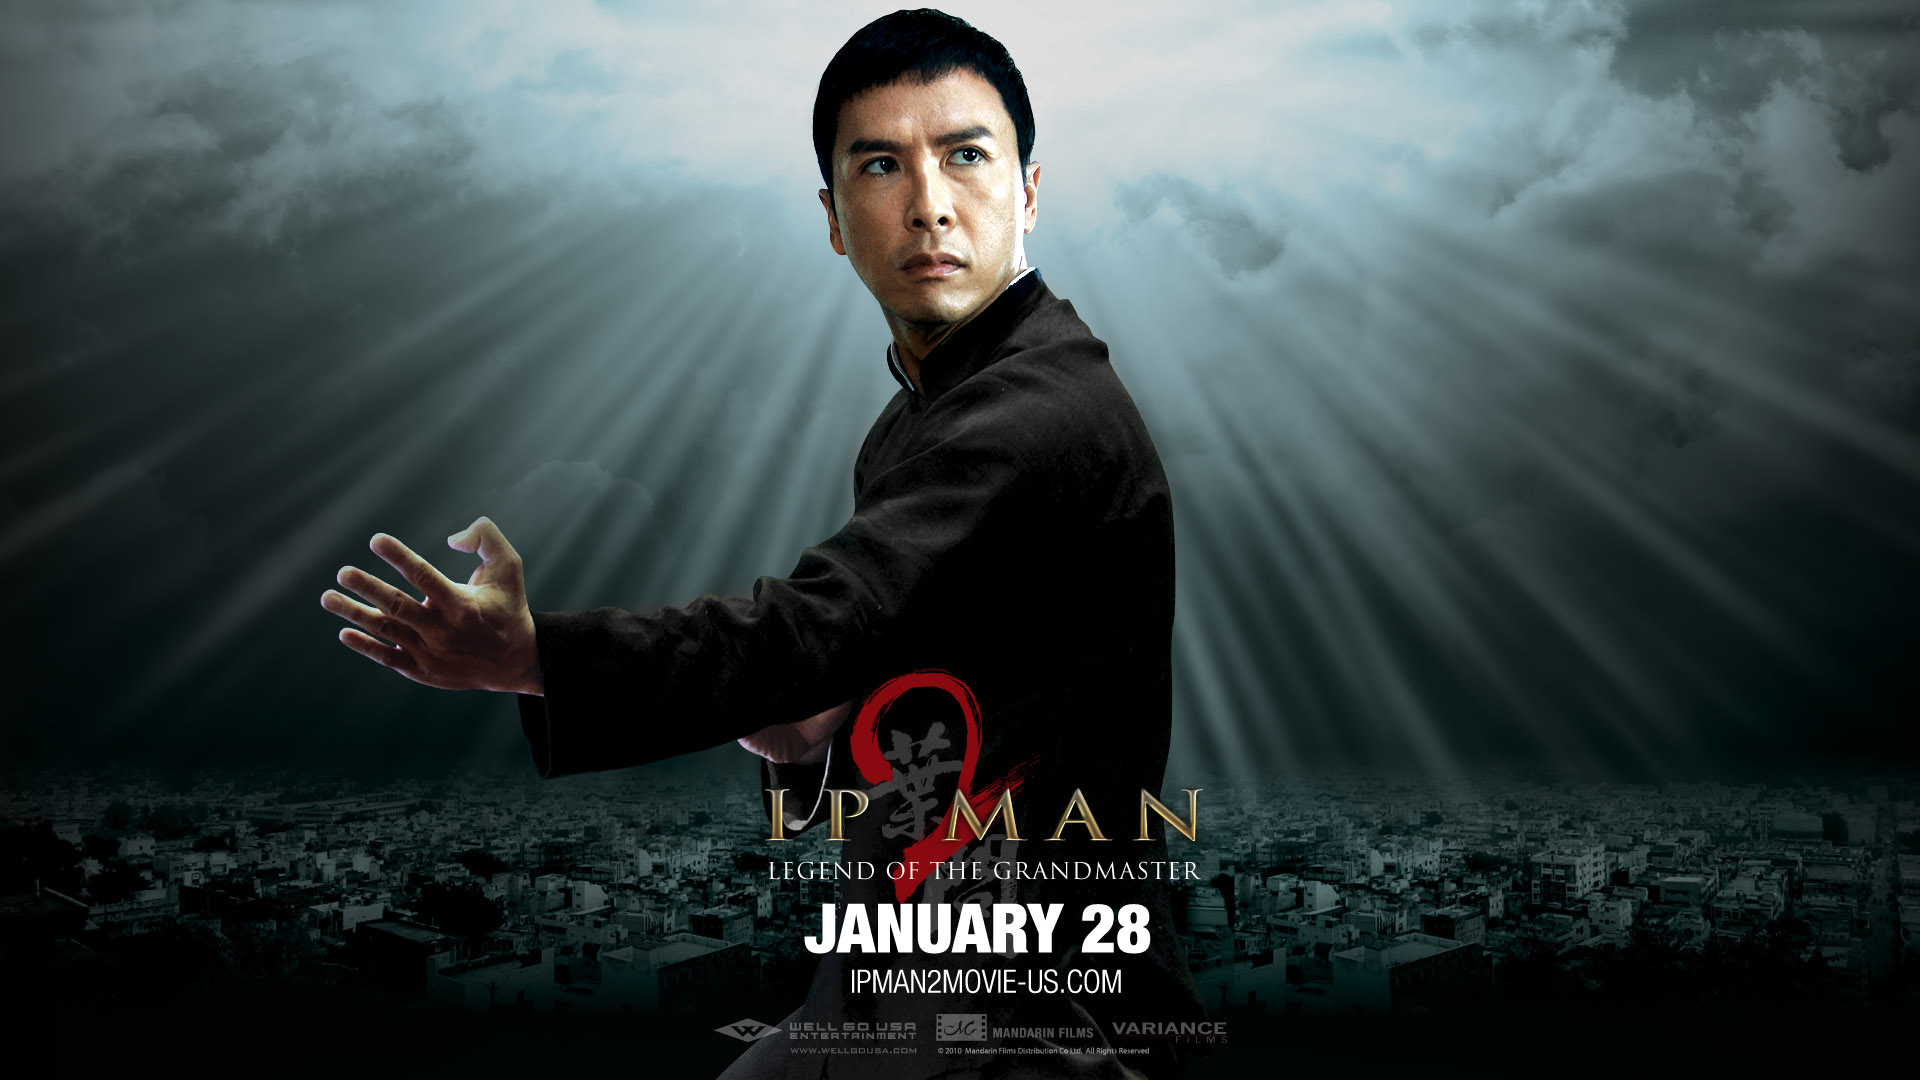 40] IP Man Wallpaper HD on WallpaperSafari 1920x1080